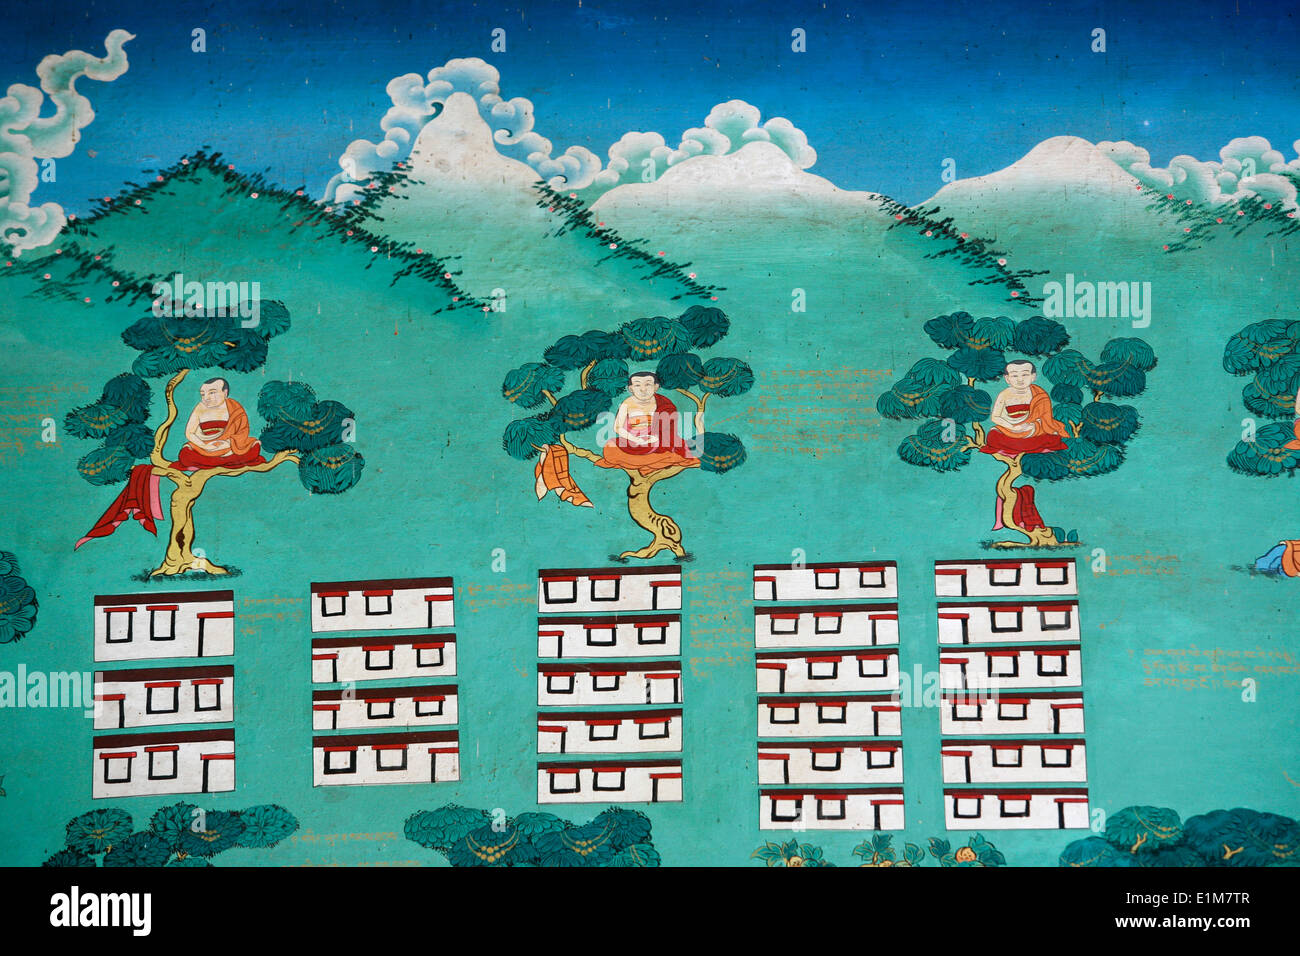 The Myth of Shangri La.  Kopan monastery. - Stock Image